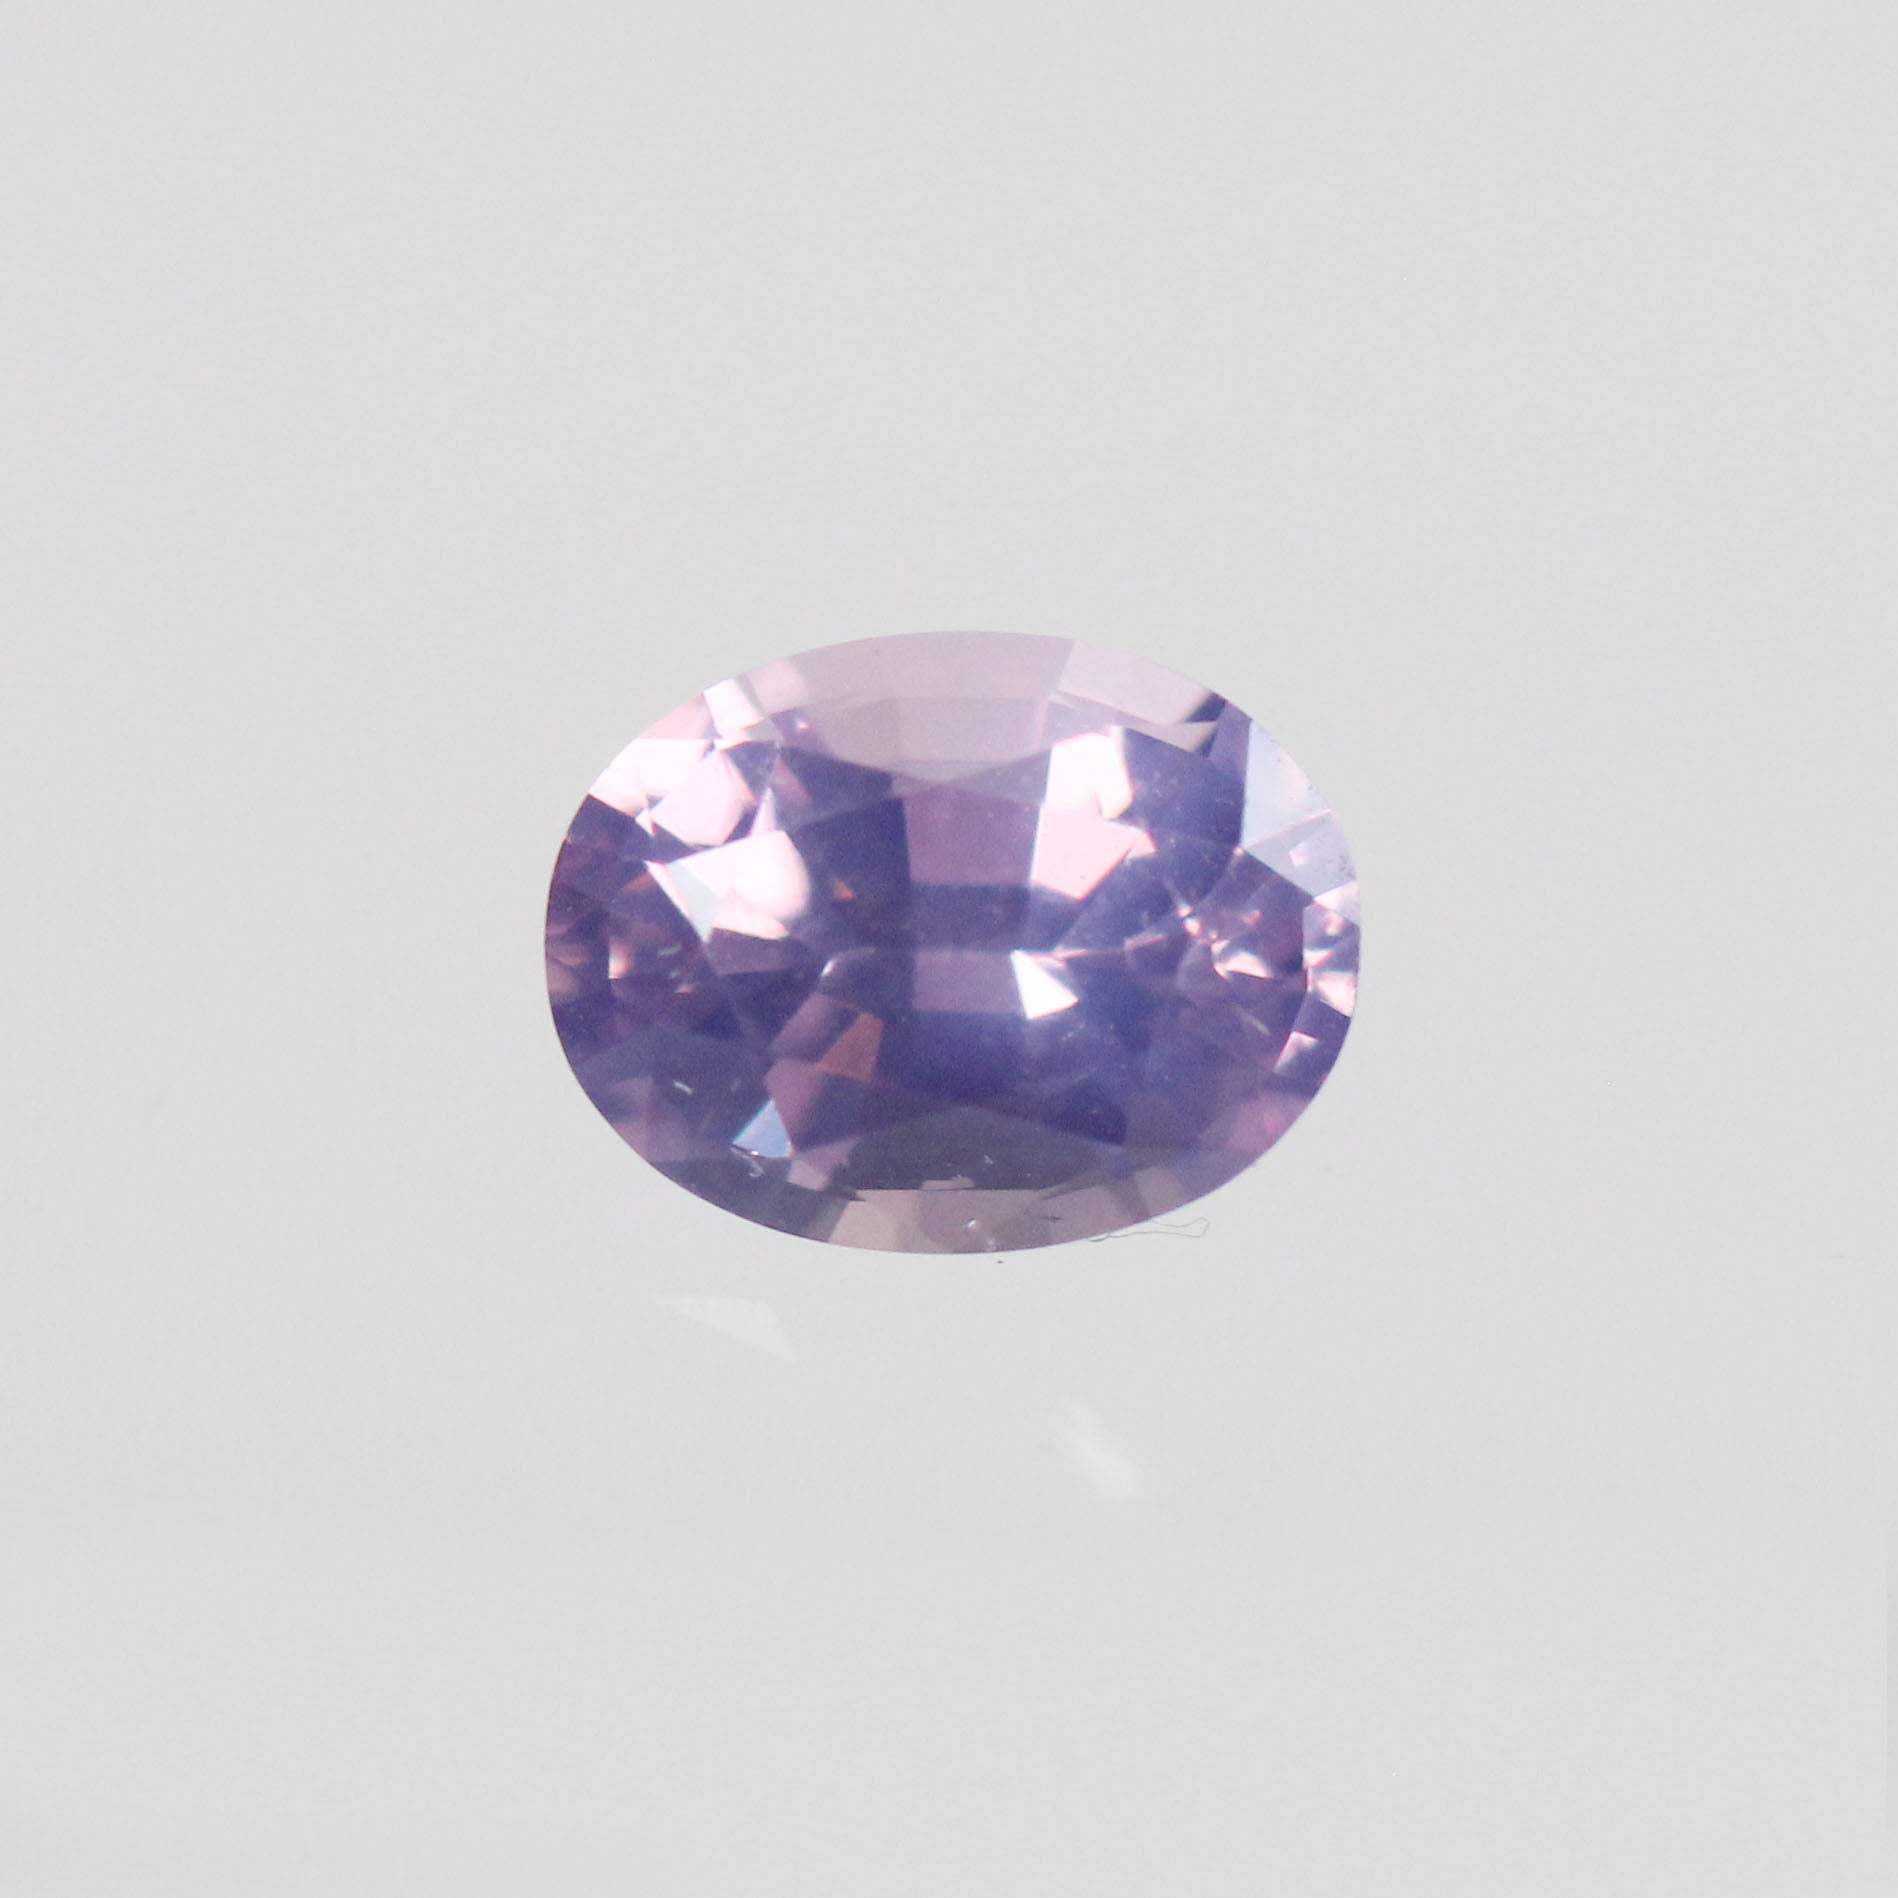 .91 Carat Oval Sapphire for Custom Work - Inventory Code OBP91 - Celestial Diamonds ® by Midwinter Co.